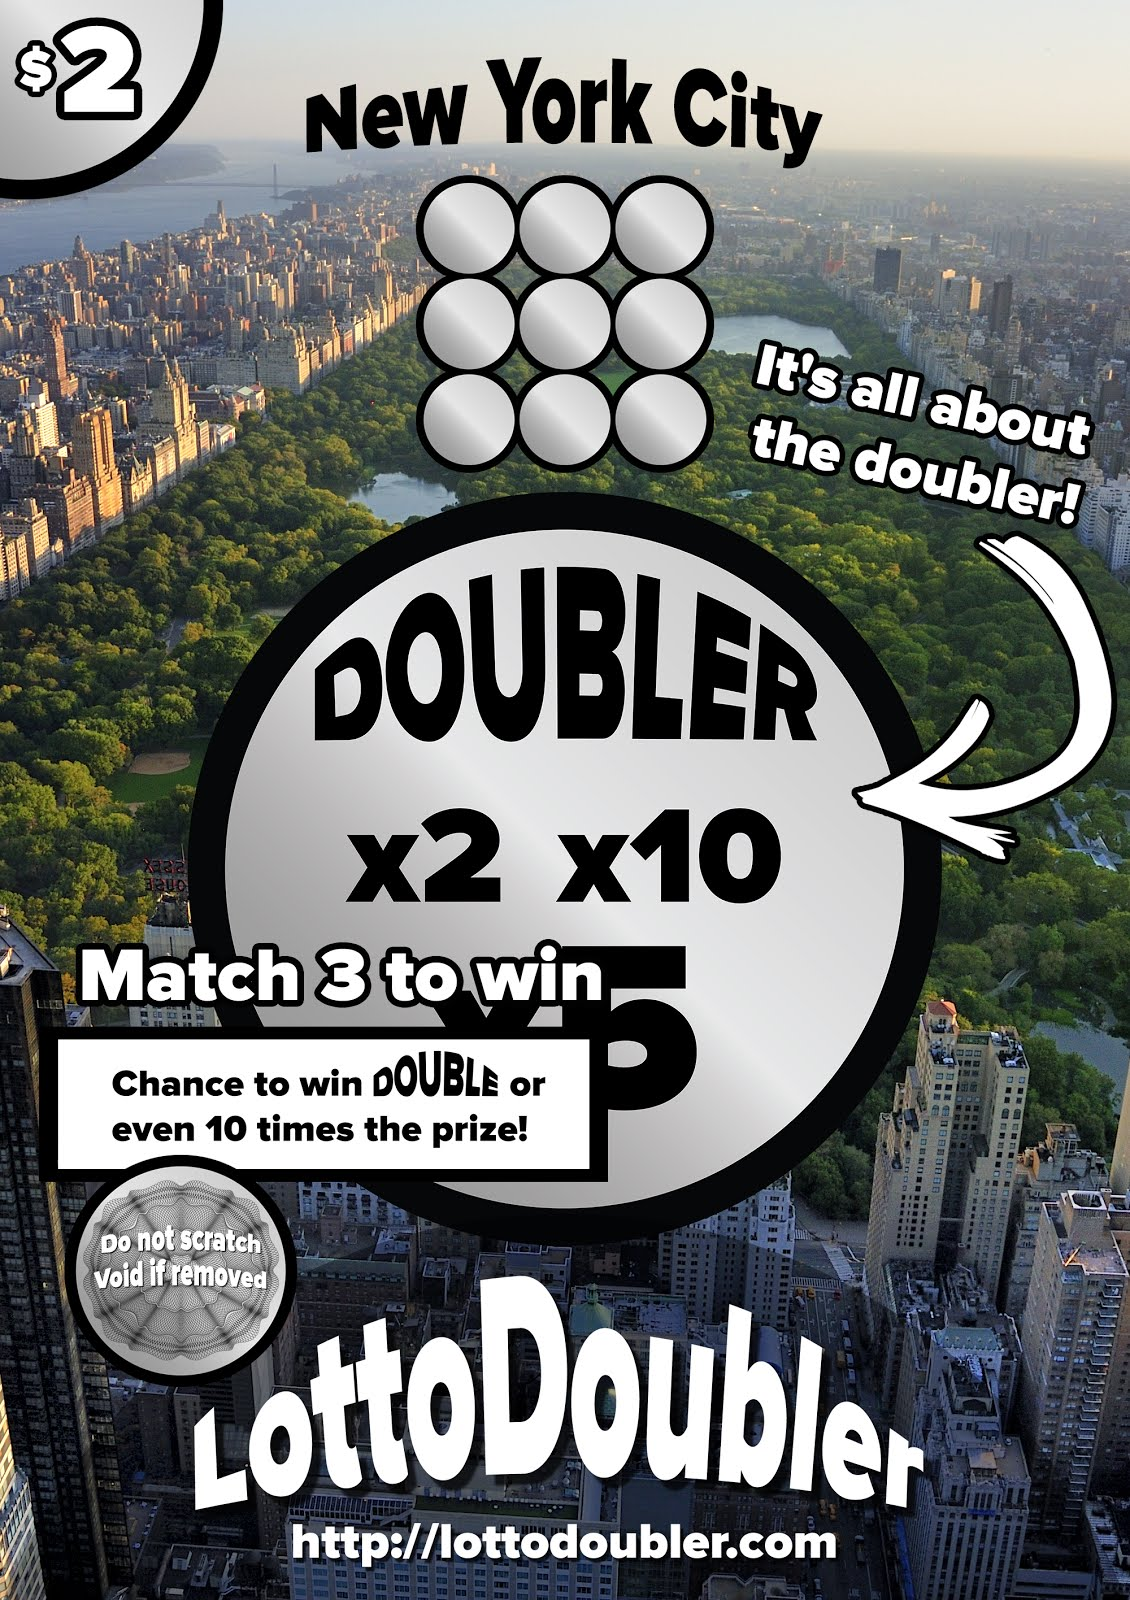 It's all about the doubler!